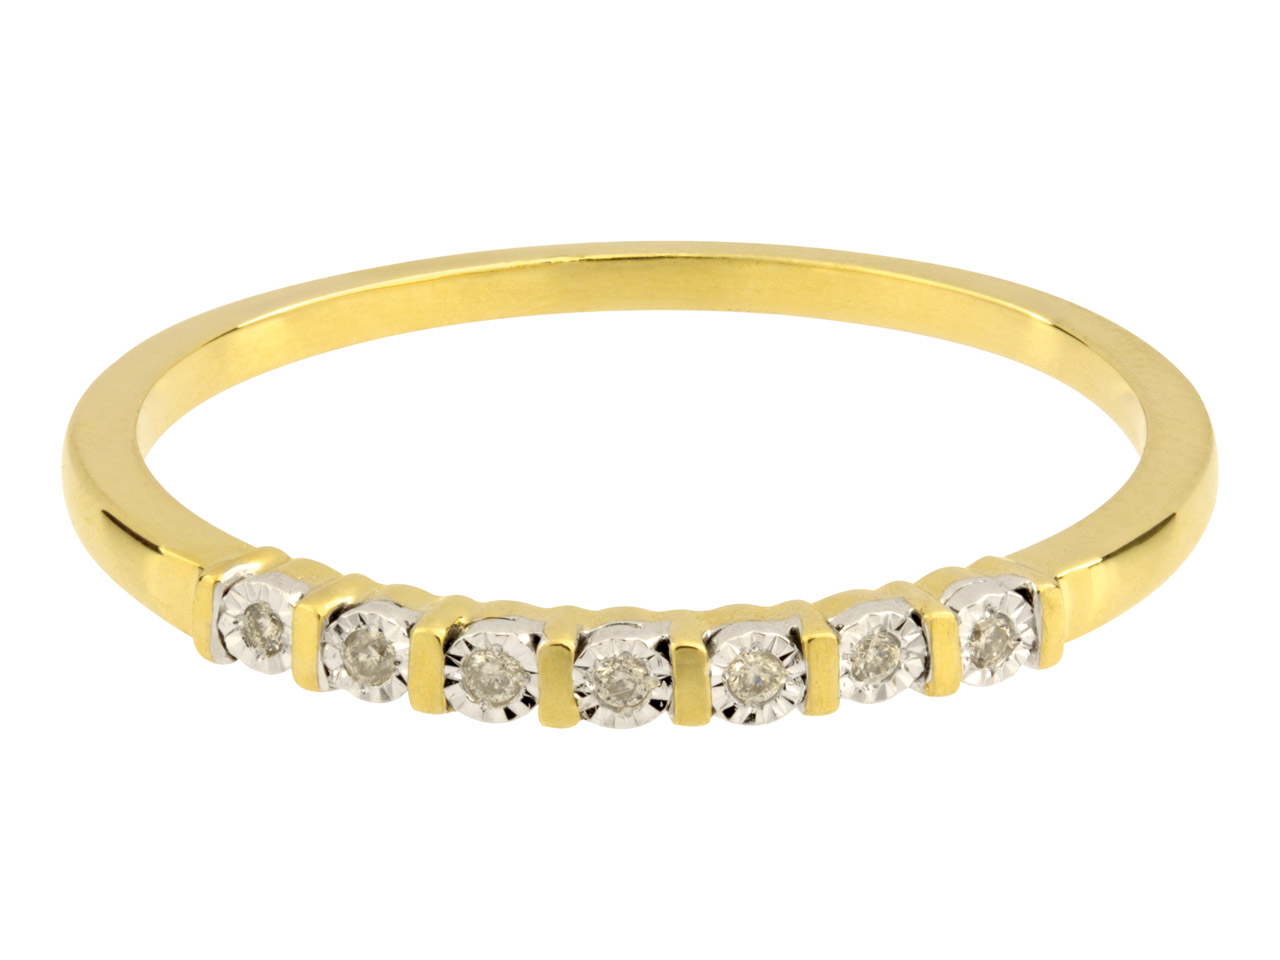 9ct Yellow Half Eternity Diamond   Ring, Hallmarked 0.03cts, Illusion Set, Finger Size P